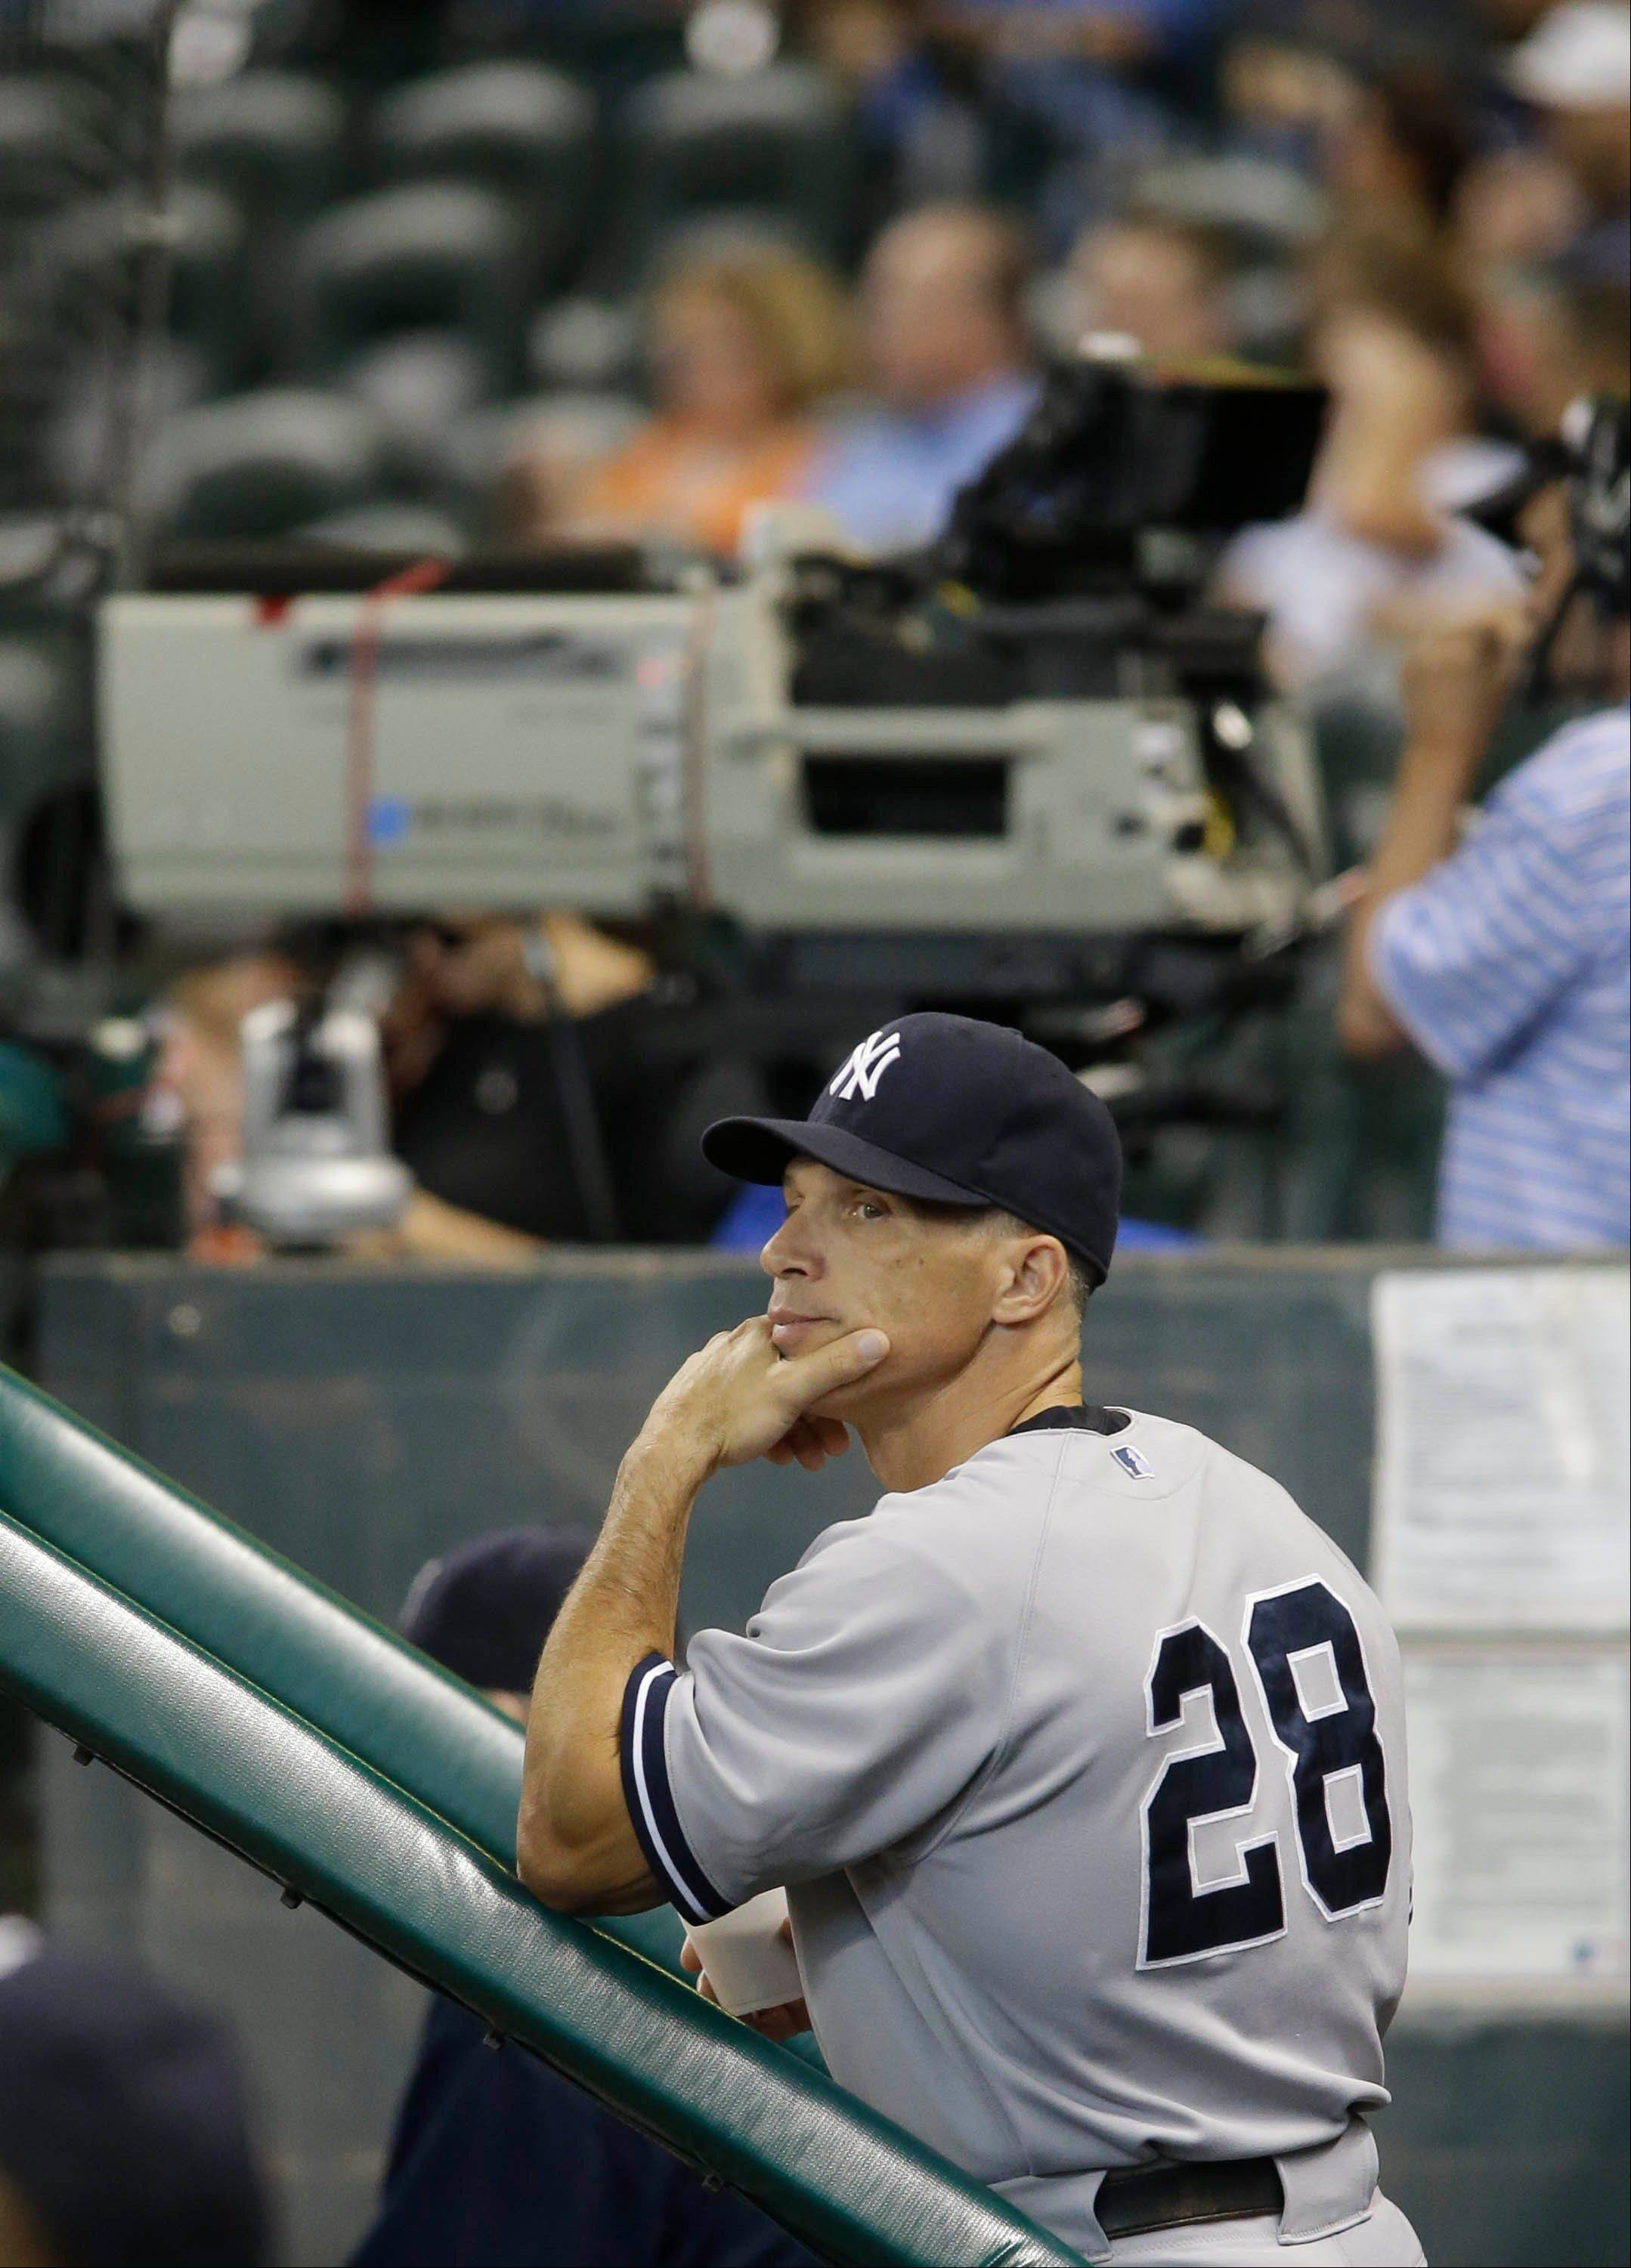 GM says Yankees want Girardi back